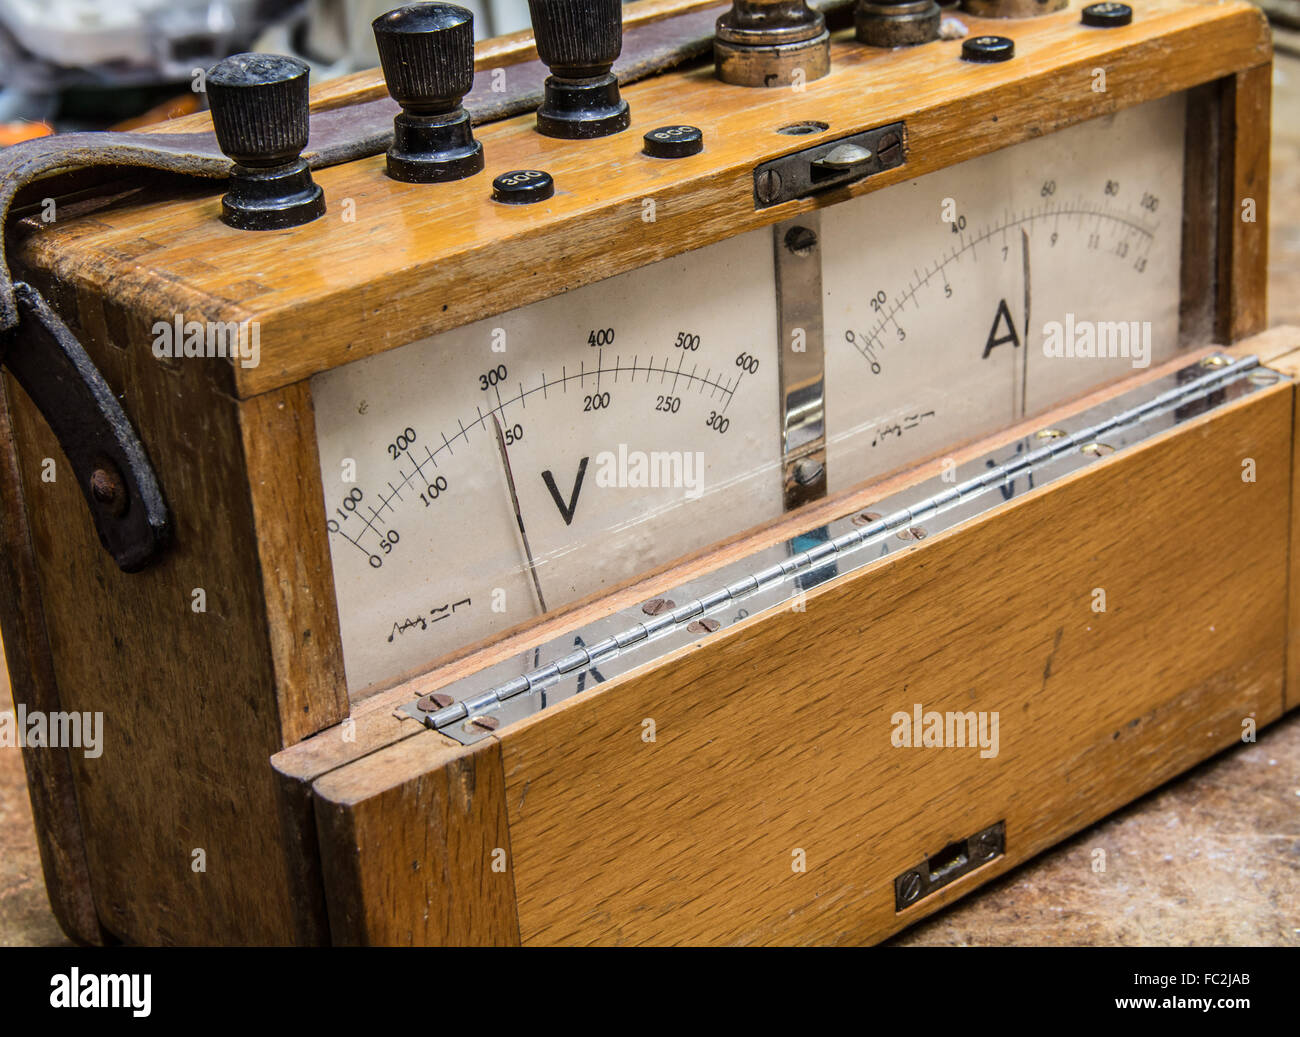 Vintage analog wooden electric meter on the old table test - Stock Image